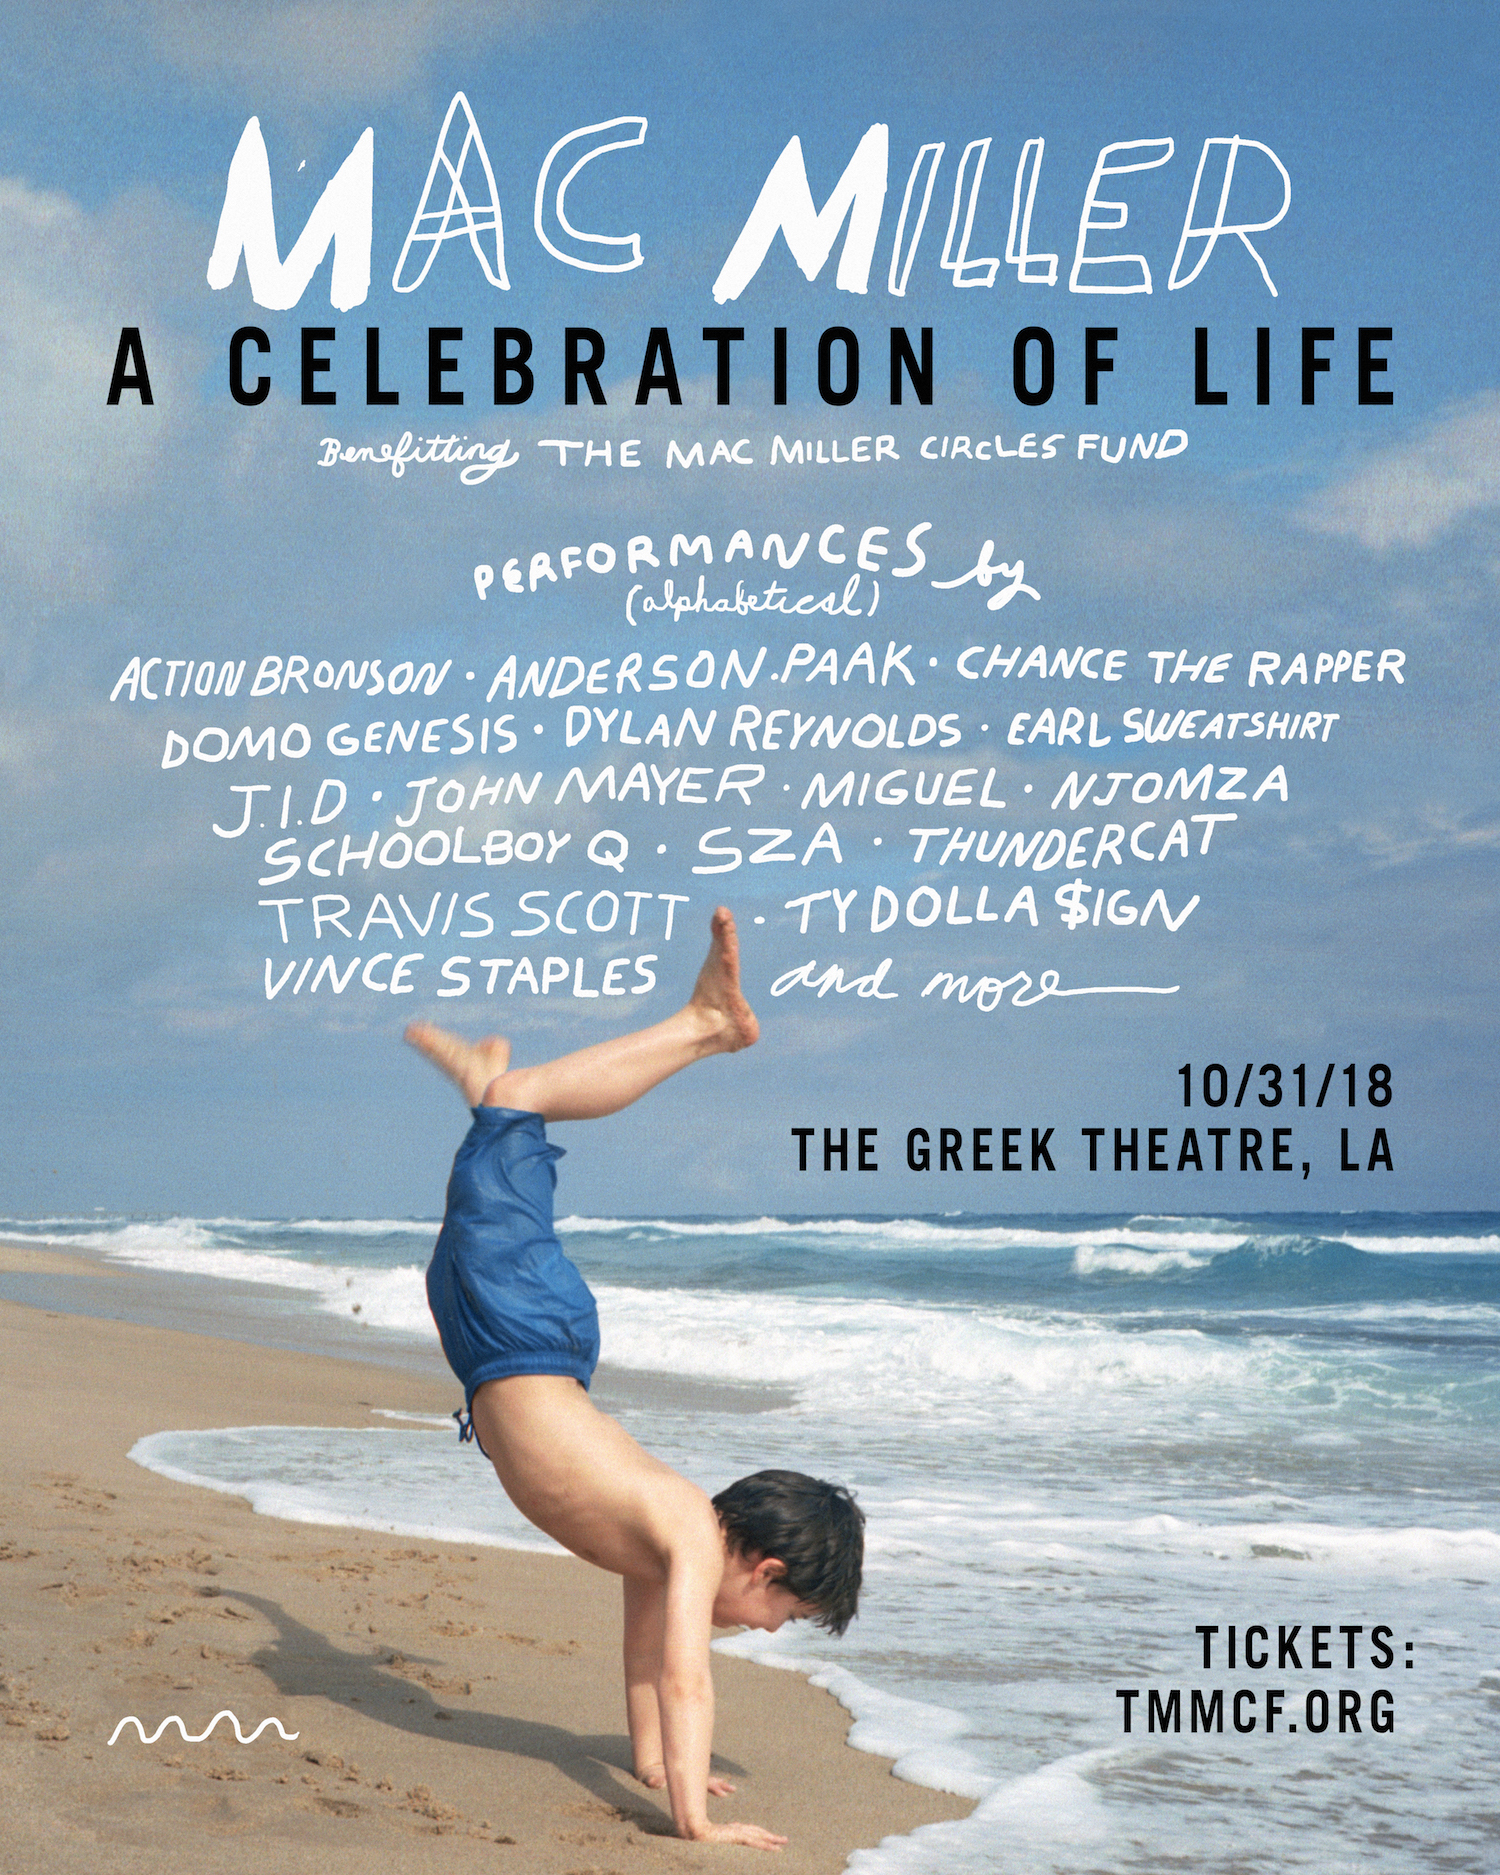 Mac MIller A Celebration of Life Benefit Concert Lineup Poster